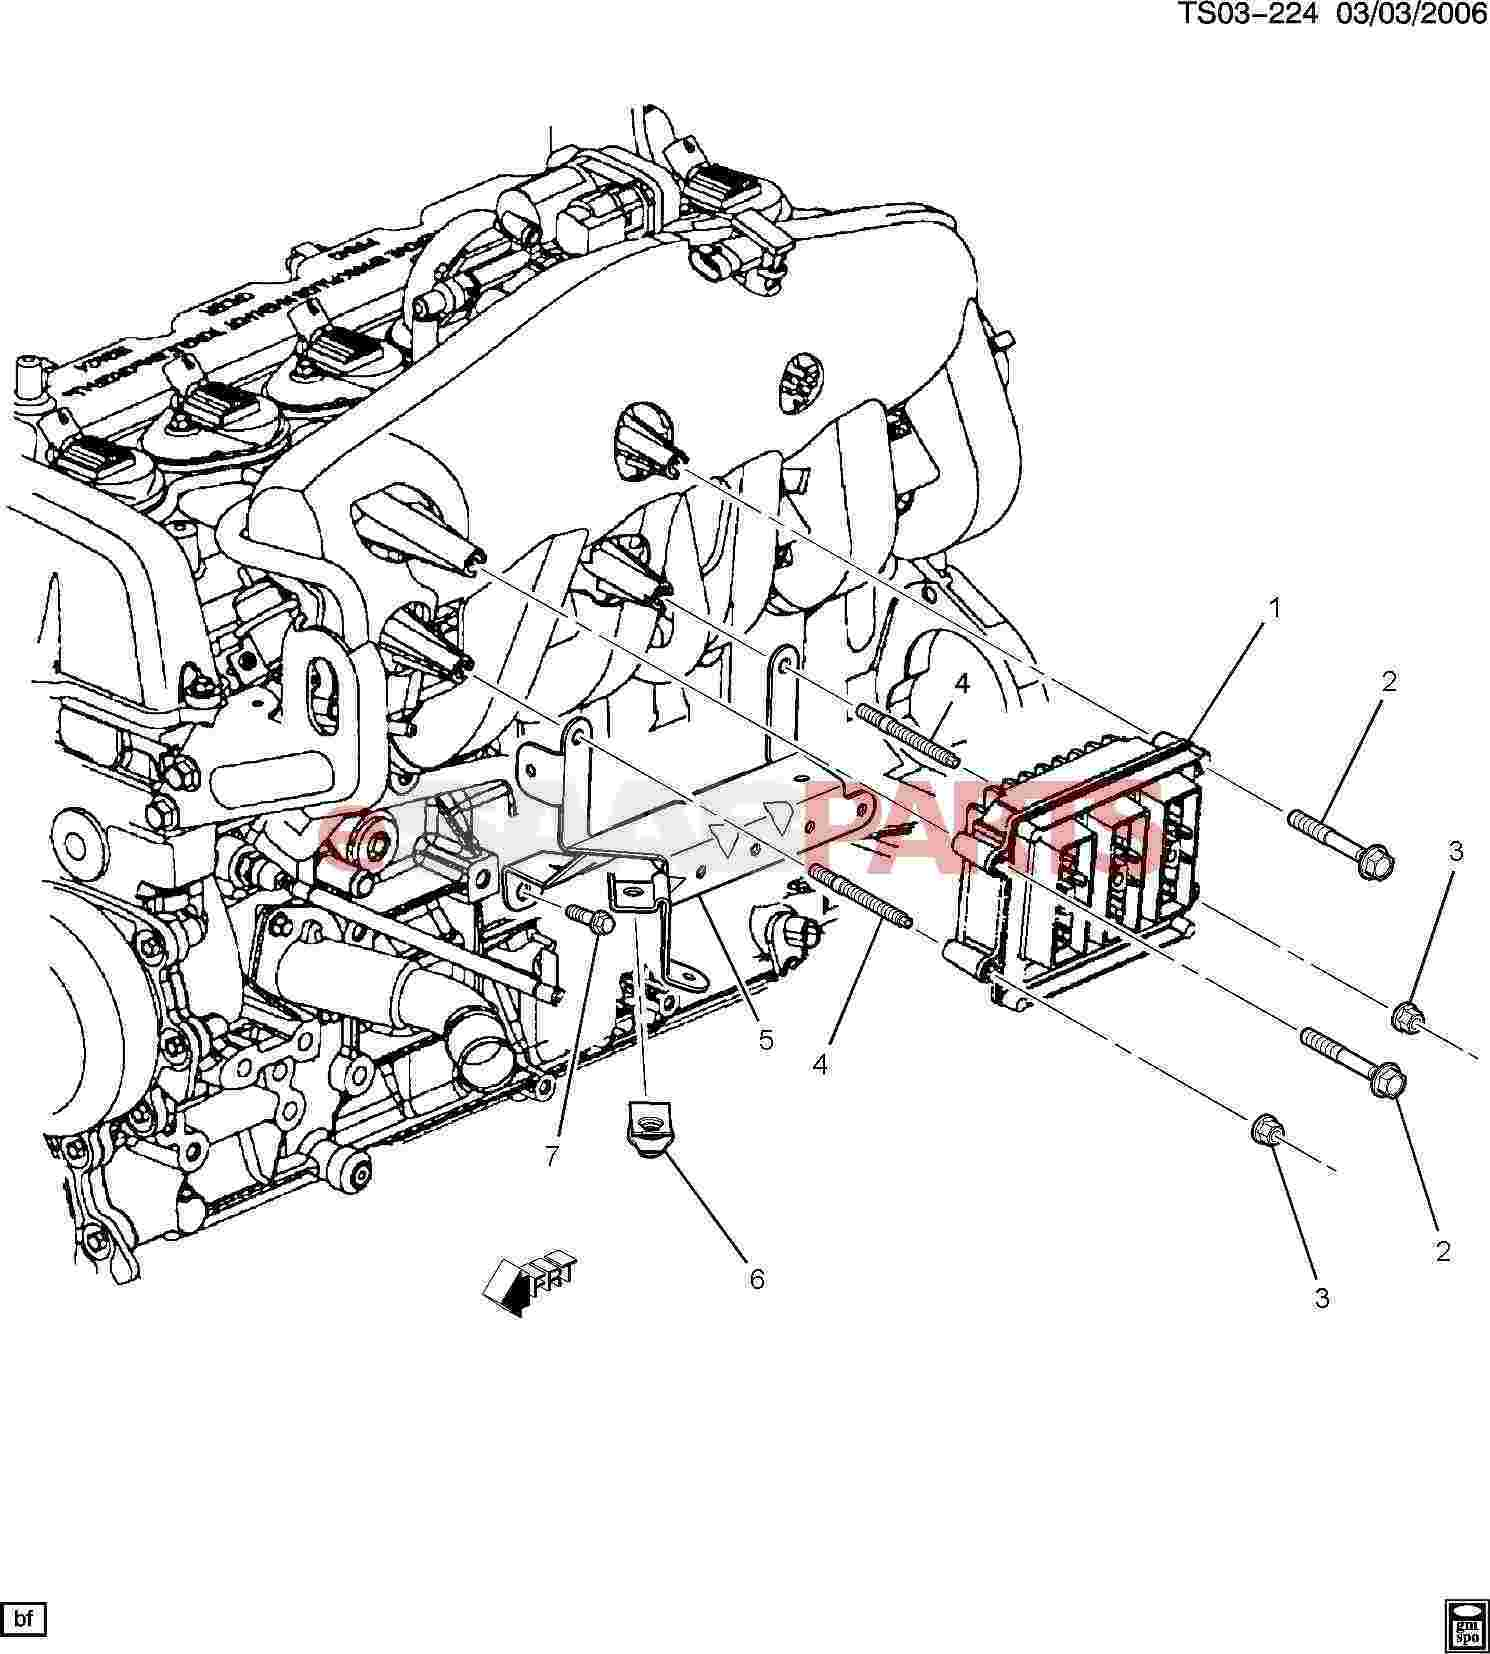 Saab 9 7x Wiring Diagram Change Your Idea With Design 03 3 Esaabparts Com U003e Electrical Parts Electronic Modules Rh Review 2006